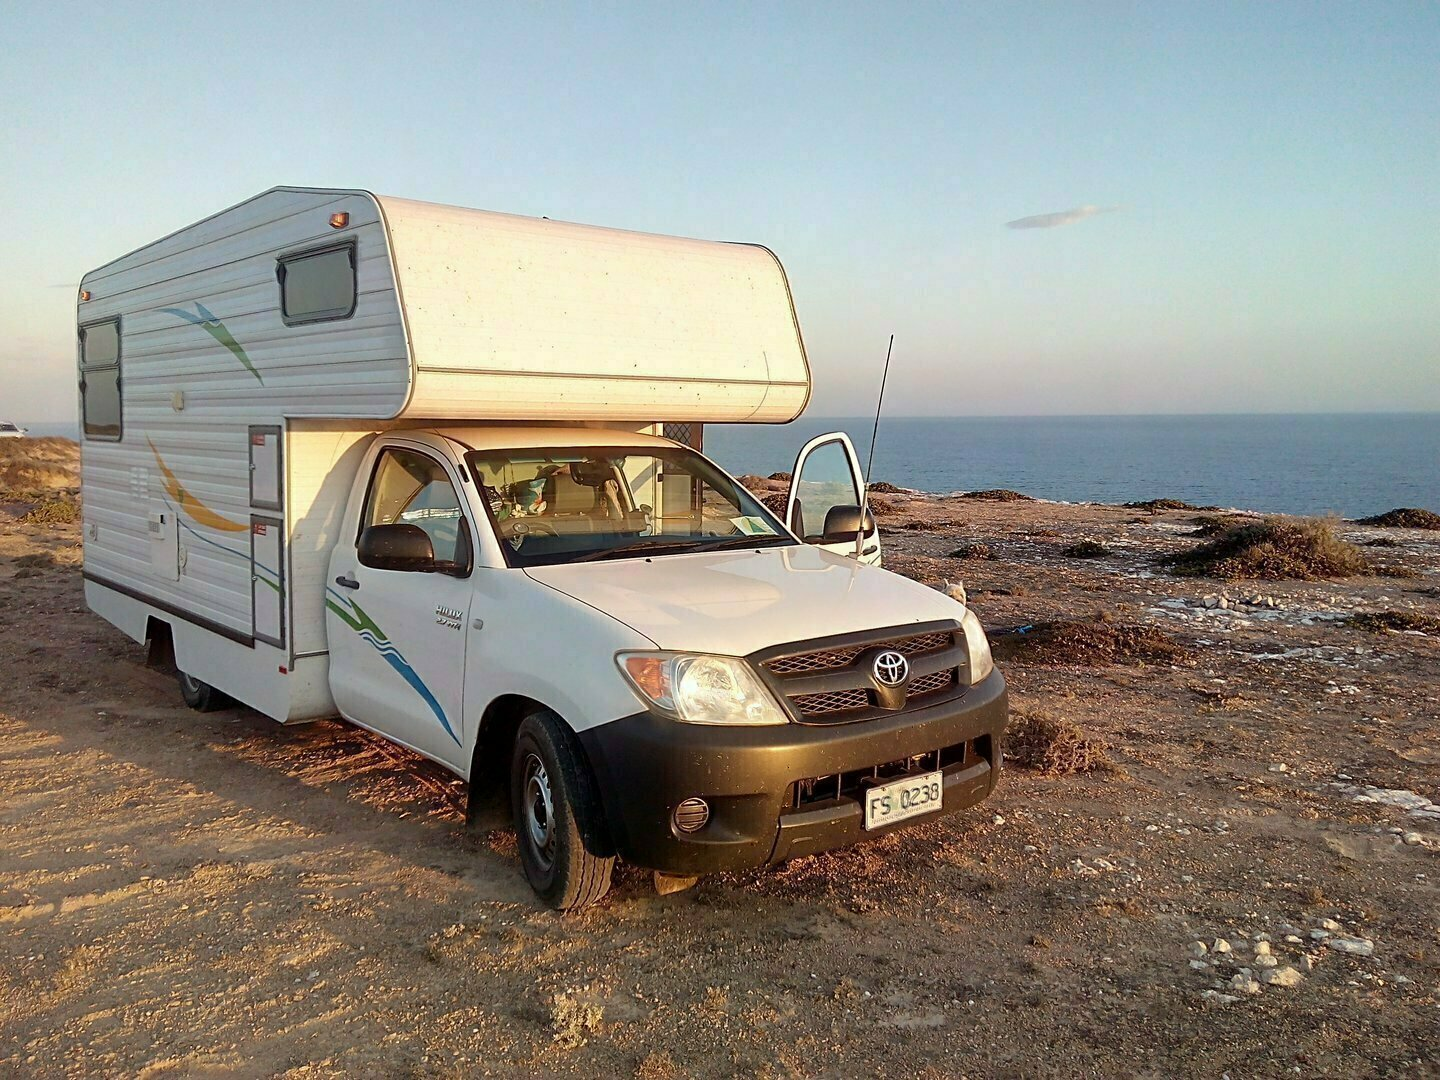 Pleasing Motorhome For Hire In New Town Tas From 150 0 Easy Drive Download Free Architecture Designs Scobabritishbridgeorg